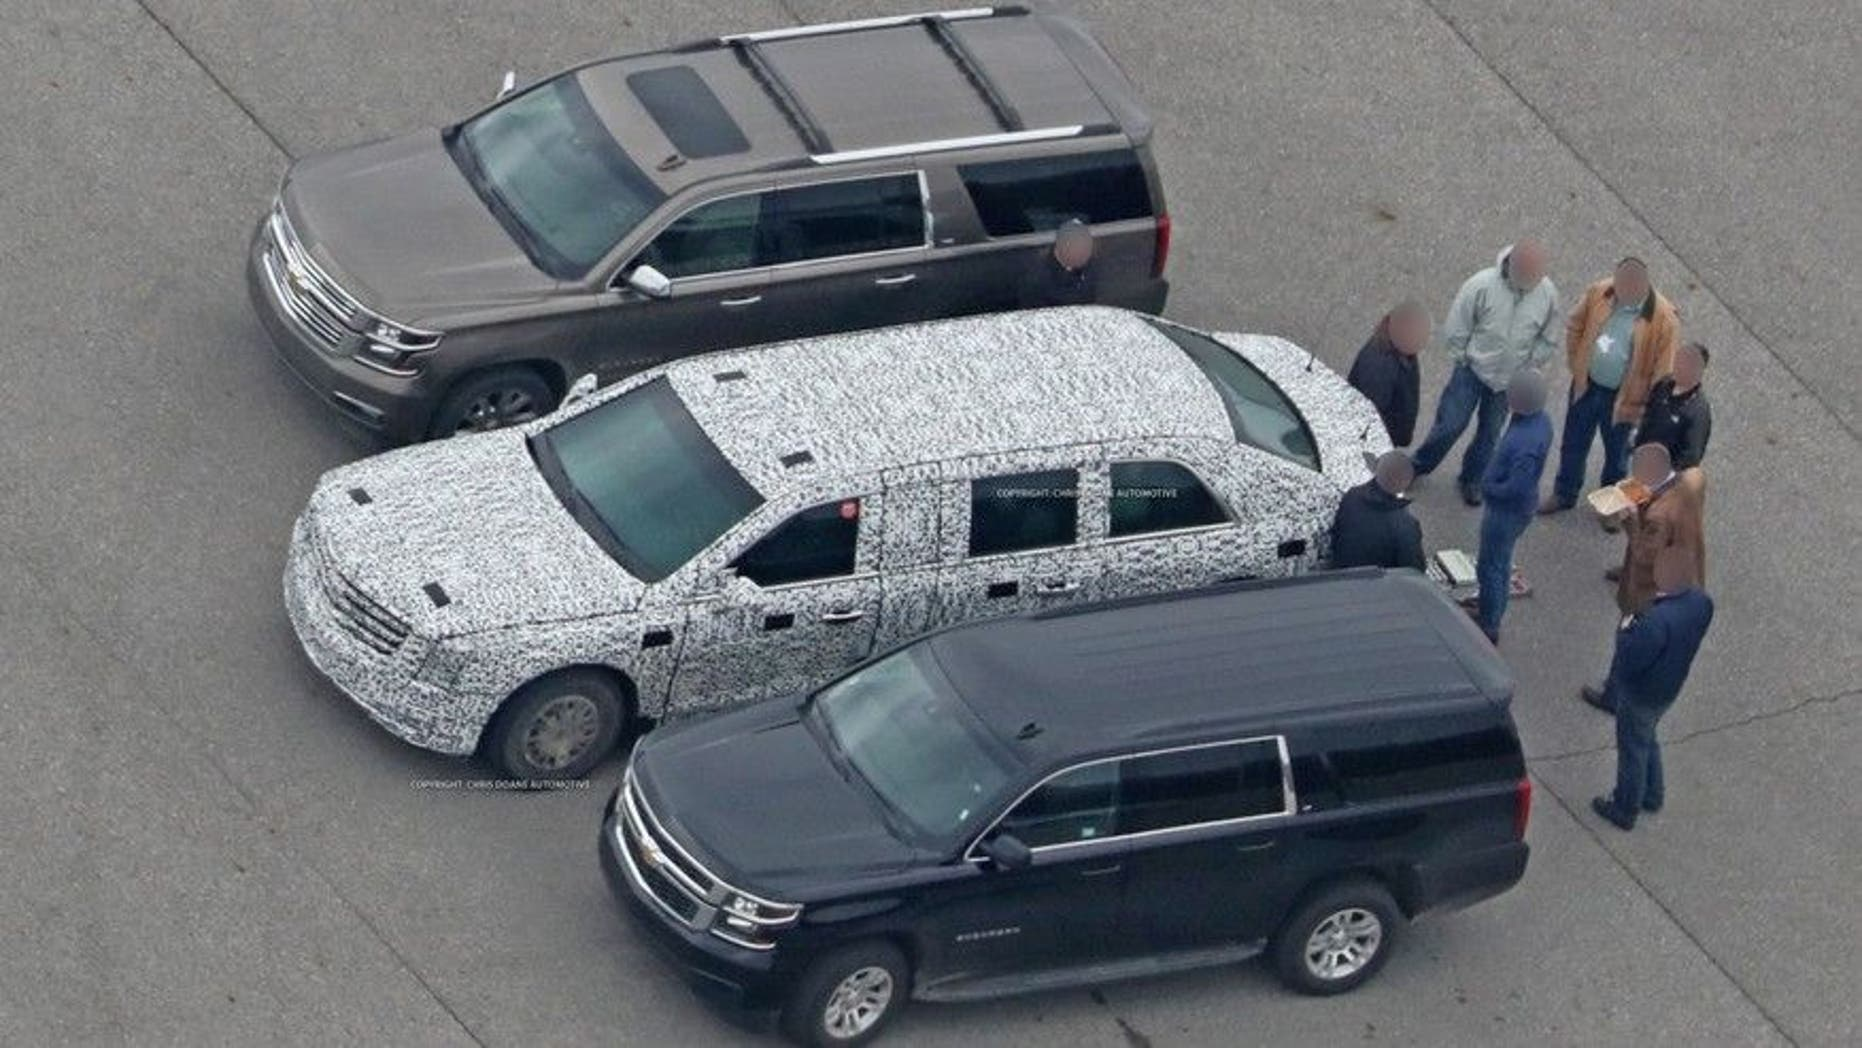 The new Presidential limousine undergoing testing in February 2017